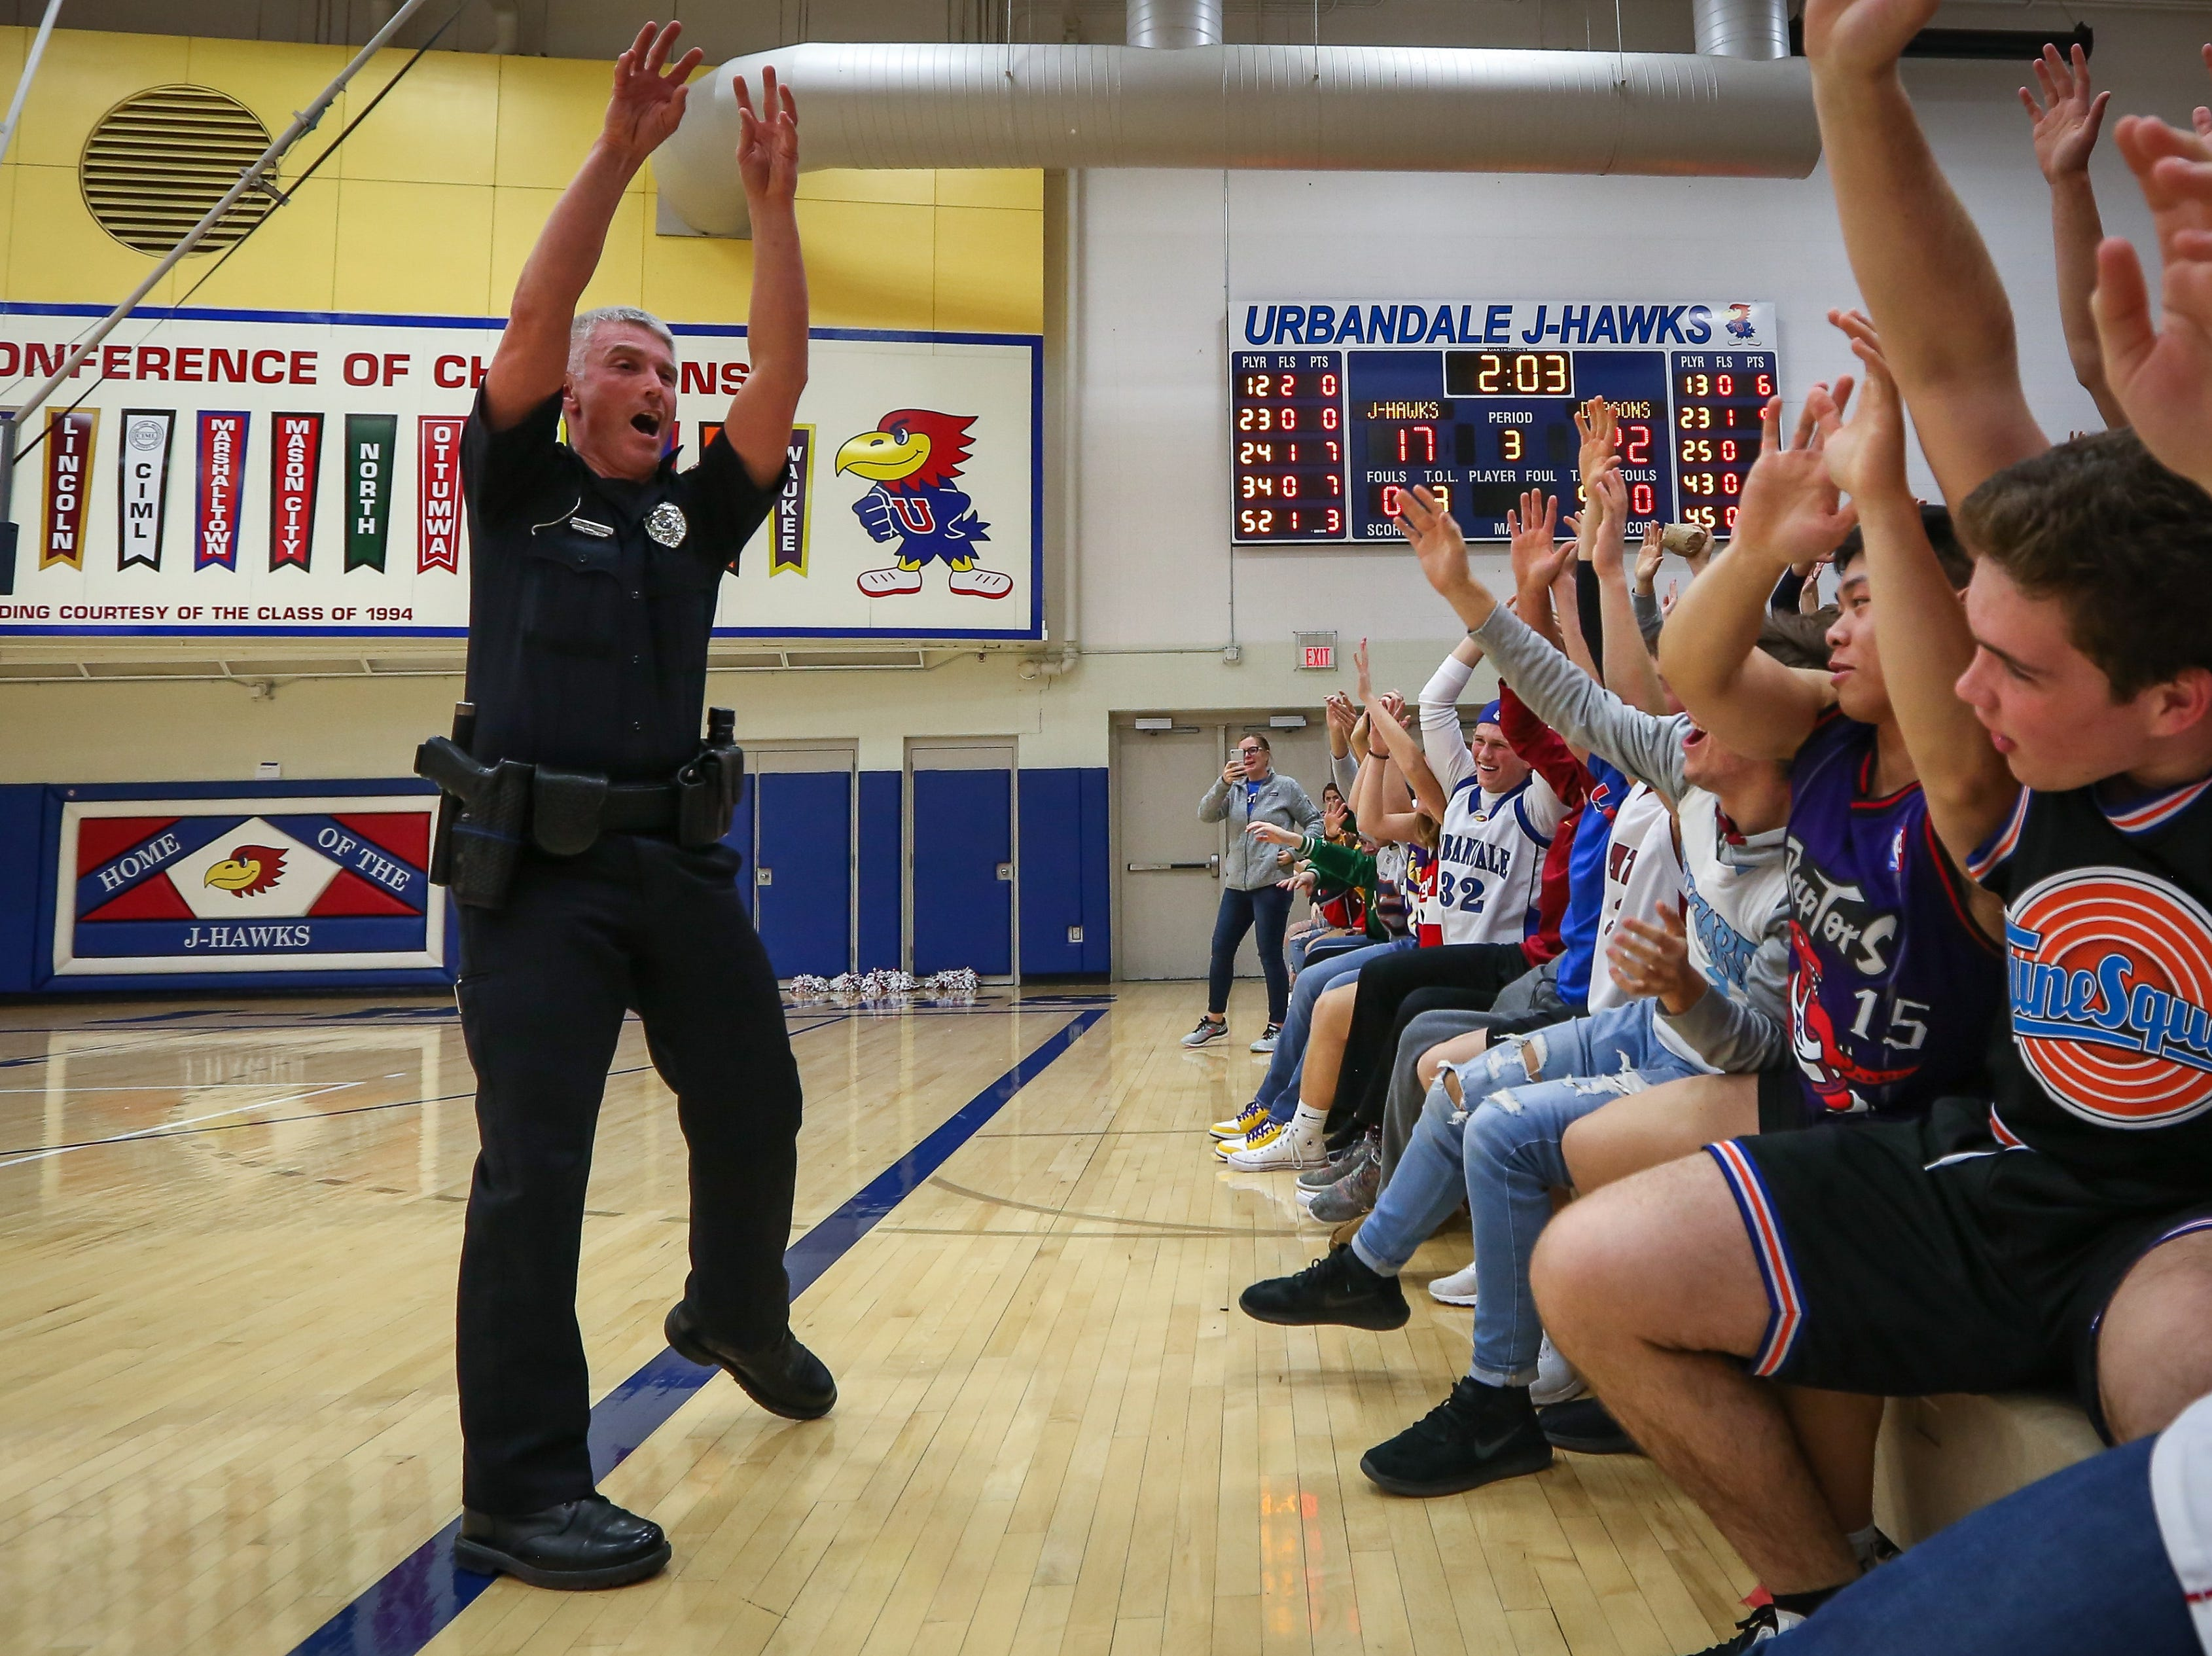 Urbandale school resource officer Eric Wilcutt leads a cheer with student fans during a boys high school basketball game between the Johnston Dragons and the Urbandale J-Hawks at Urbandale High School on Dec. 18, 2018 in Urbandale, Iowa.